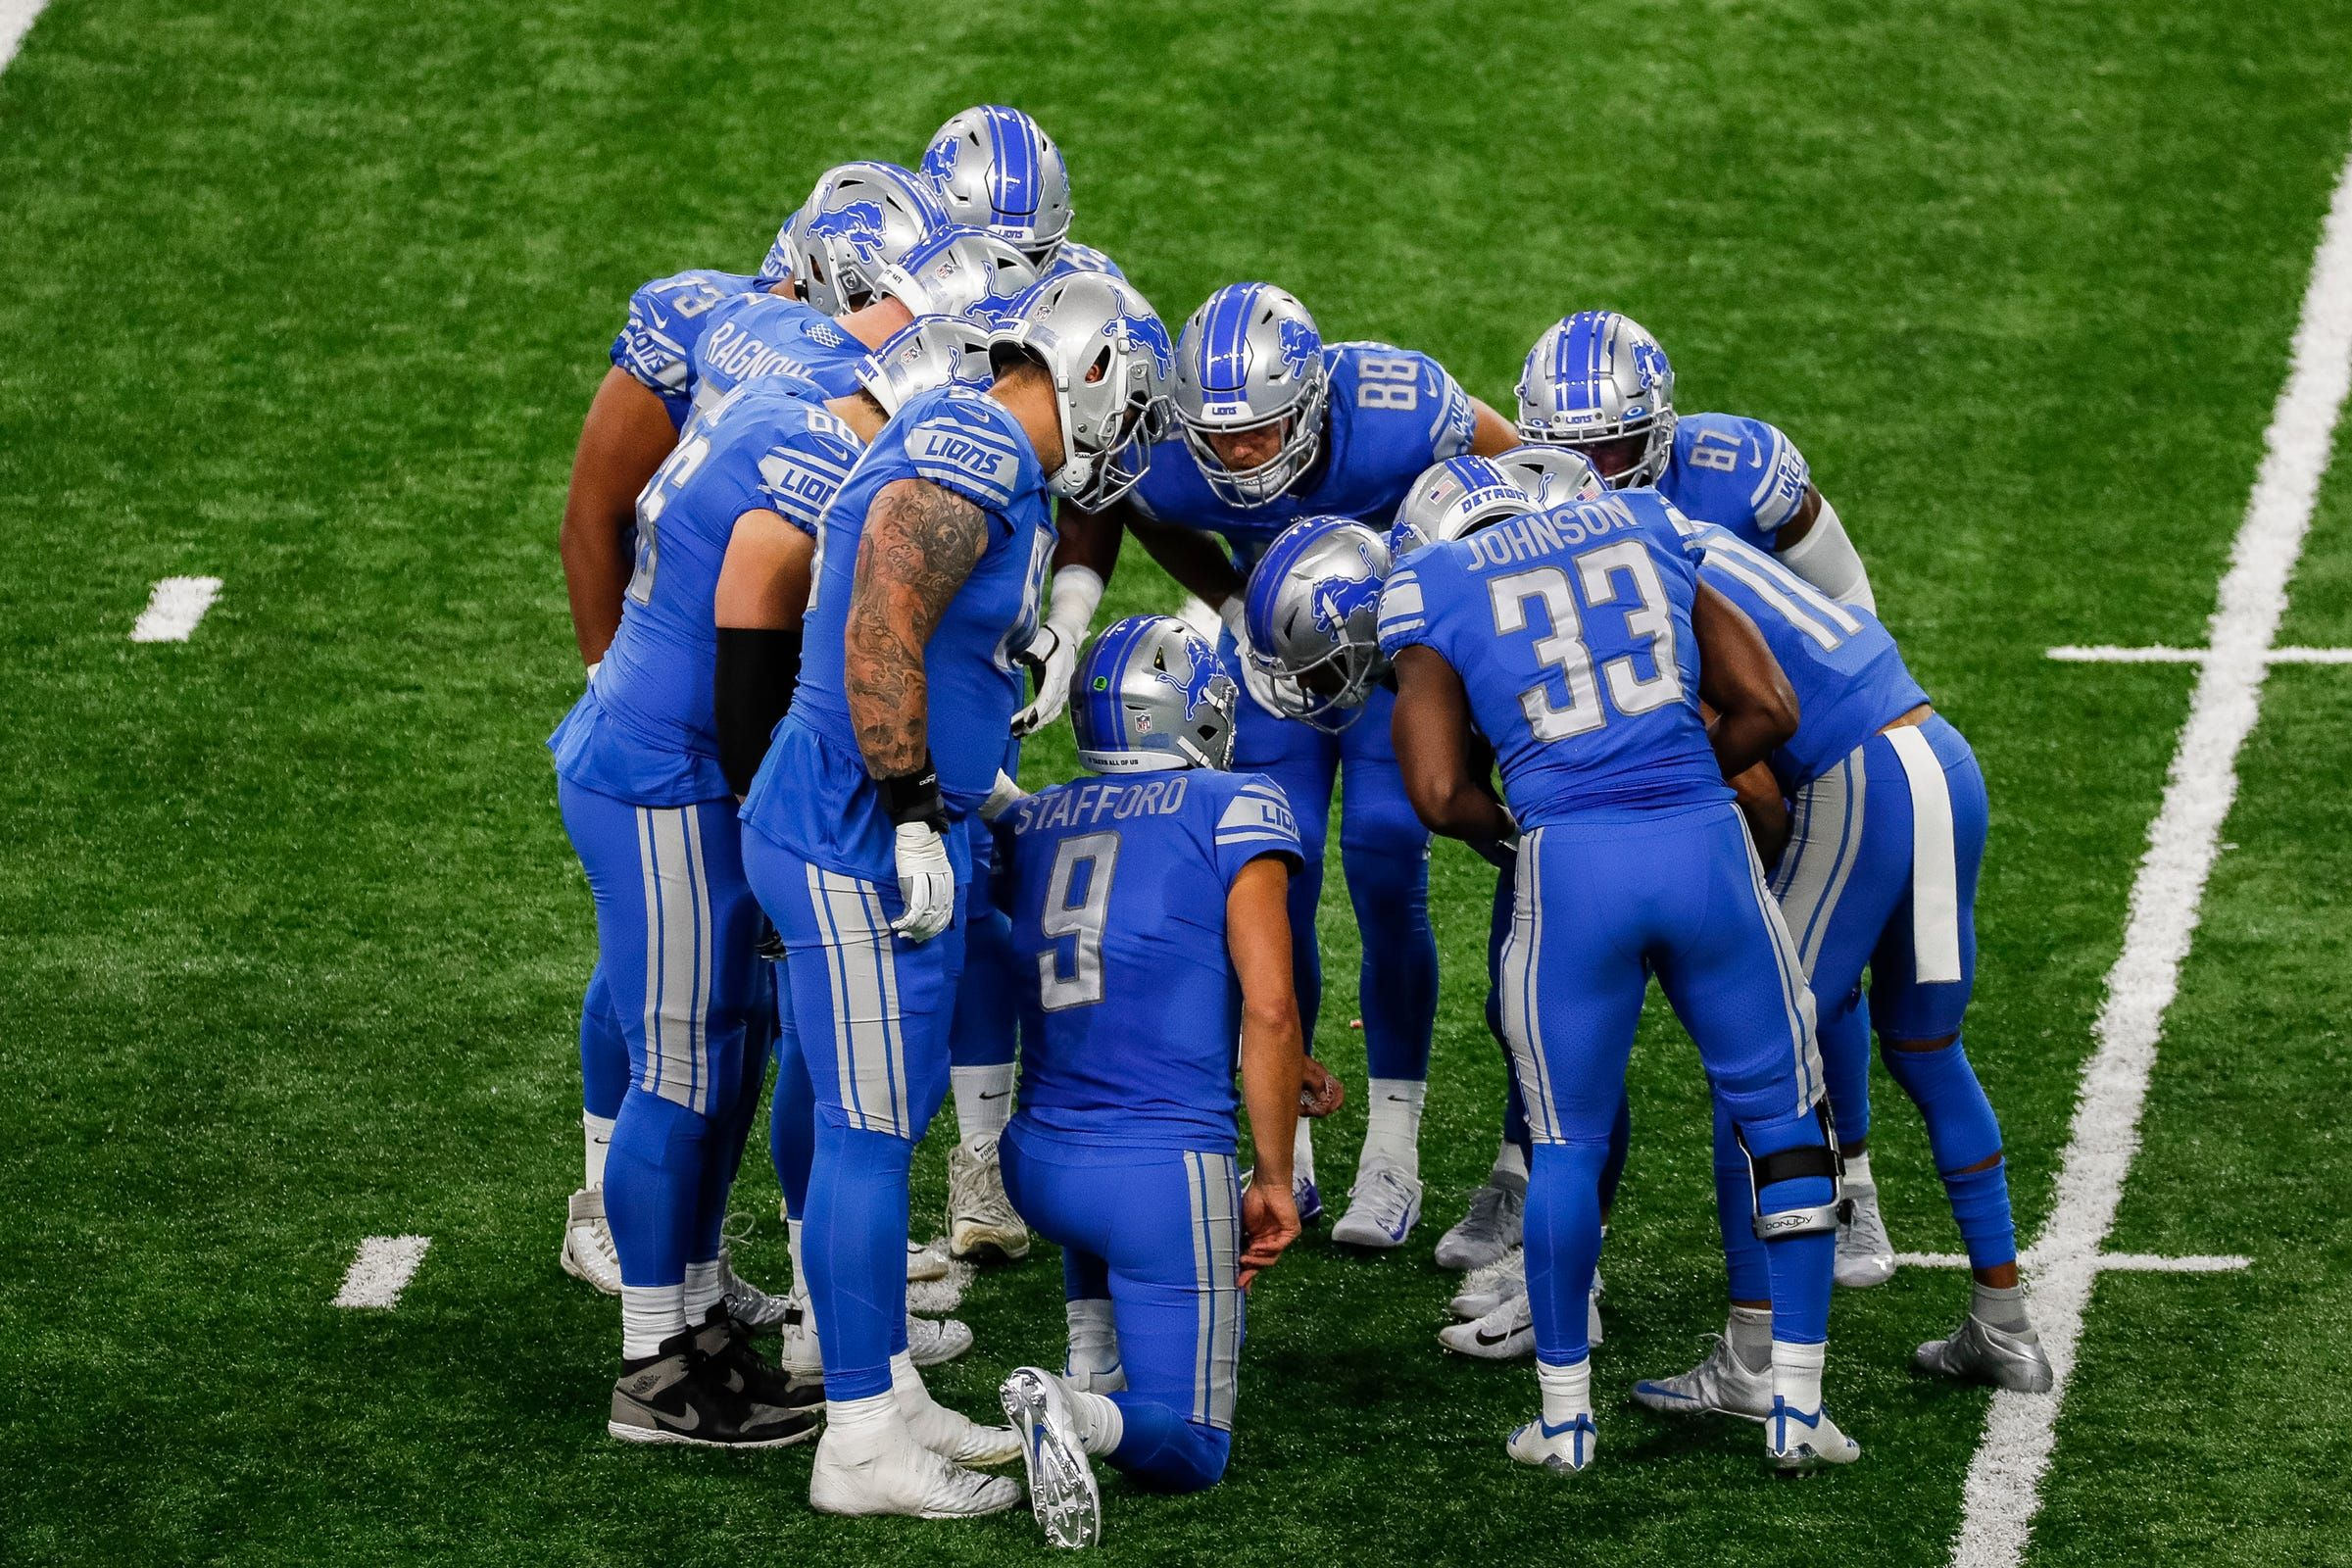 Nfl Power Rankings Where Detroit Lions Stand After Week 1 Detroit Lions Michigan Sports Nfl